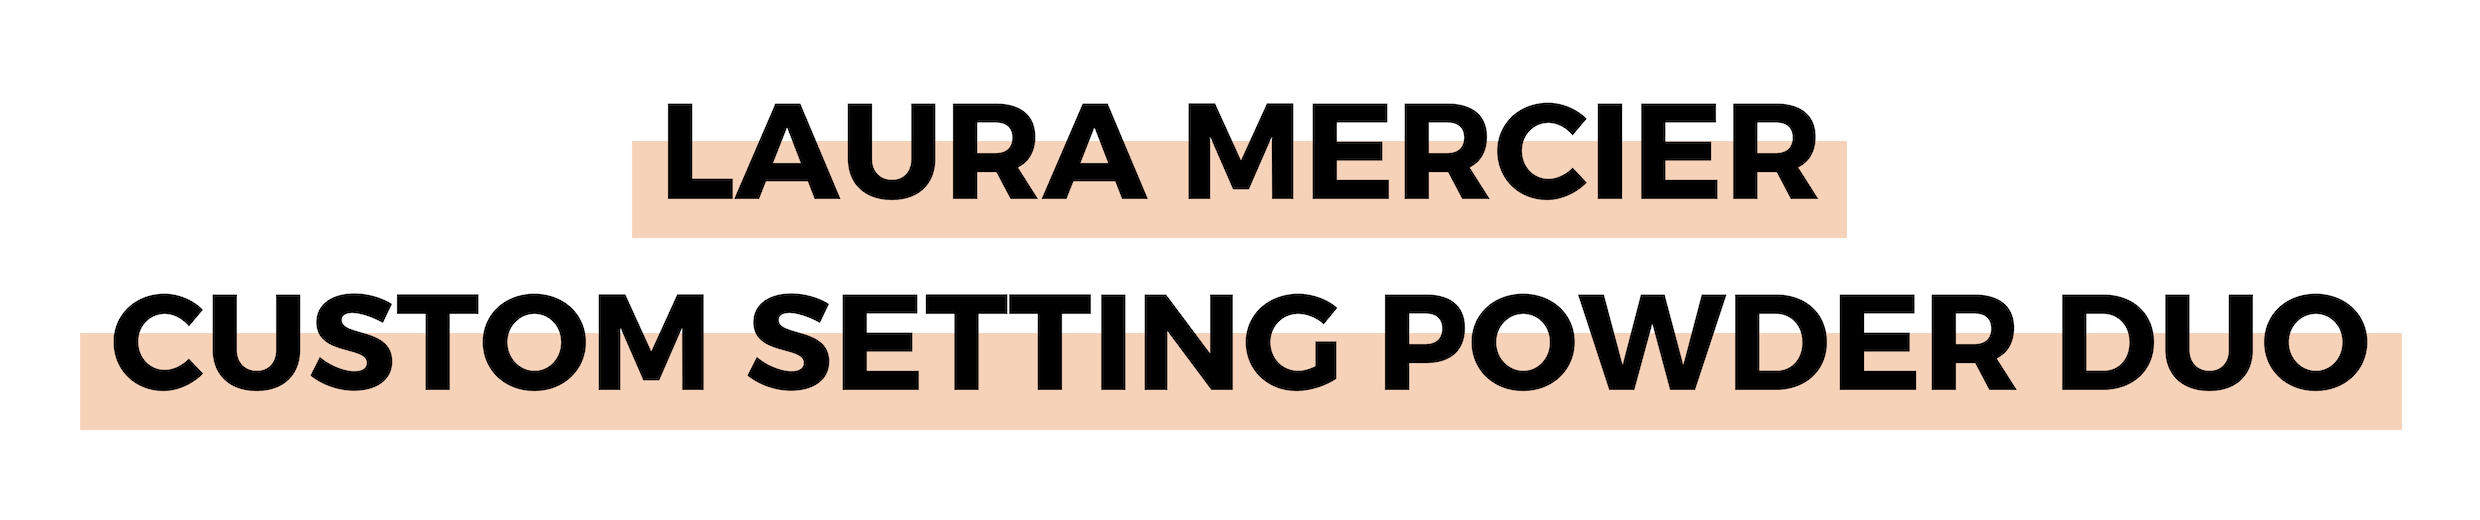 LAURA MERCIER CUSTOM SETTING POWDER DUO.png